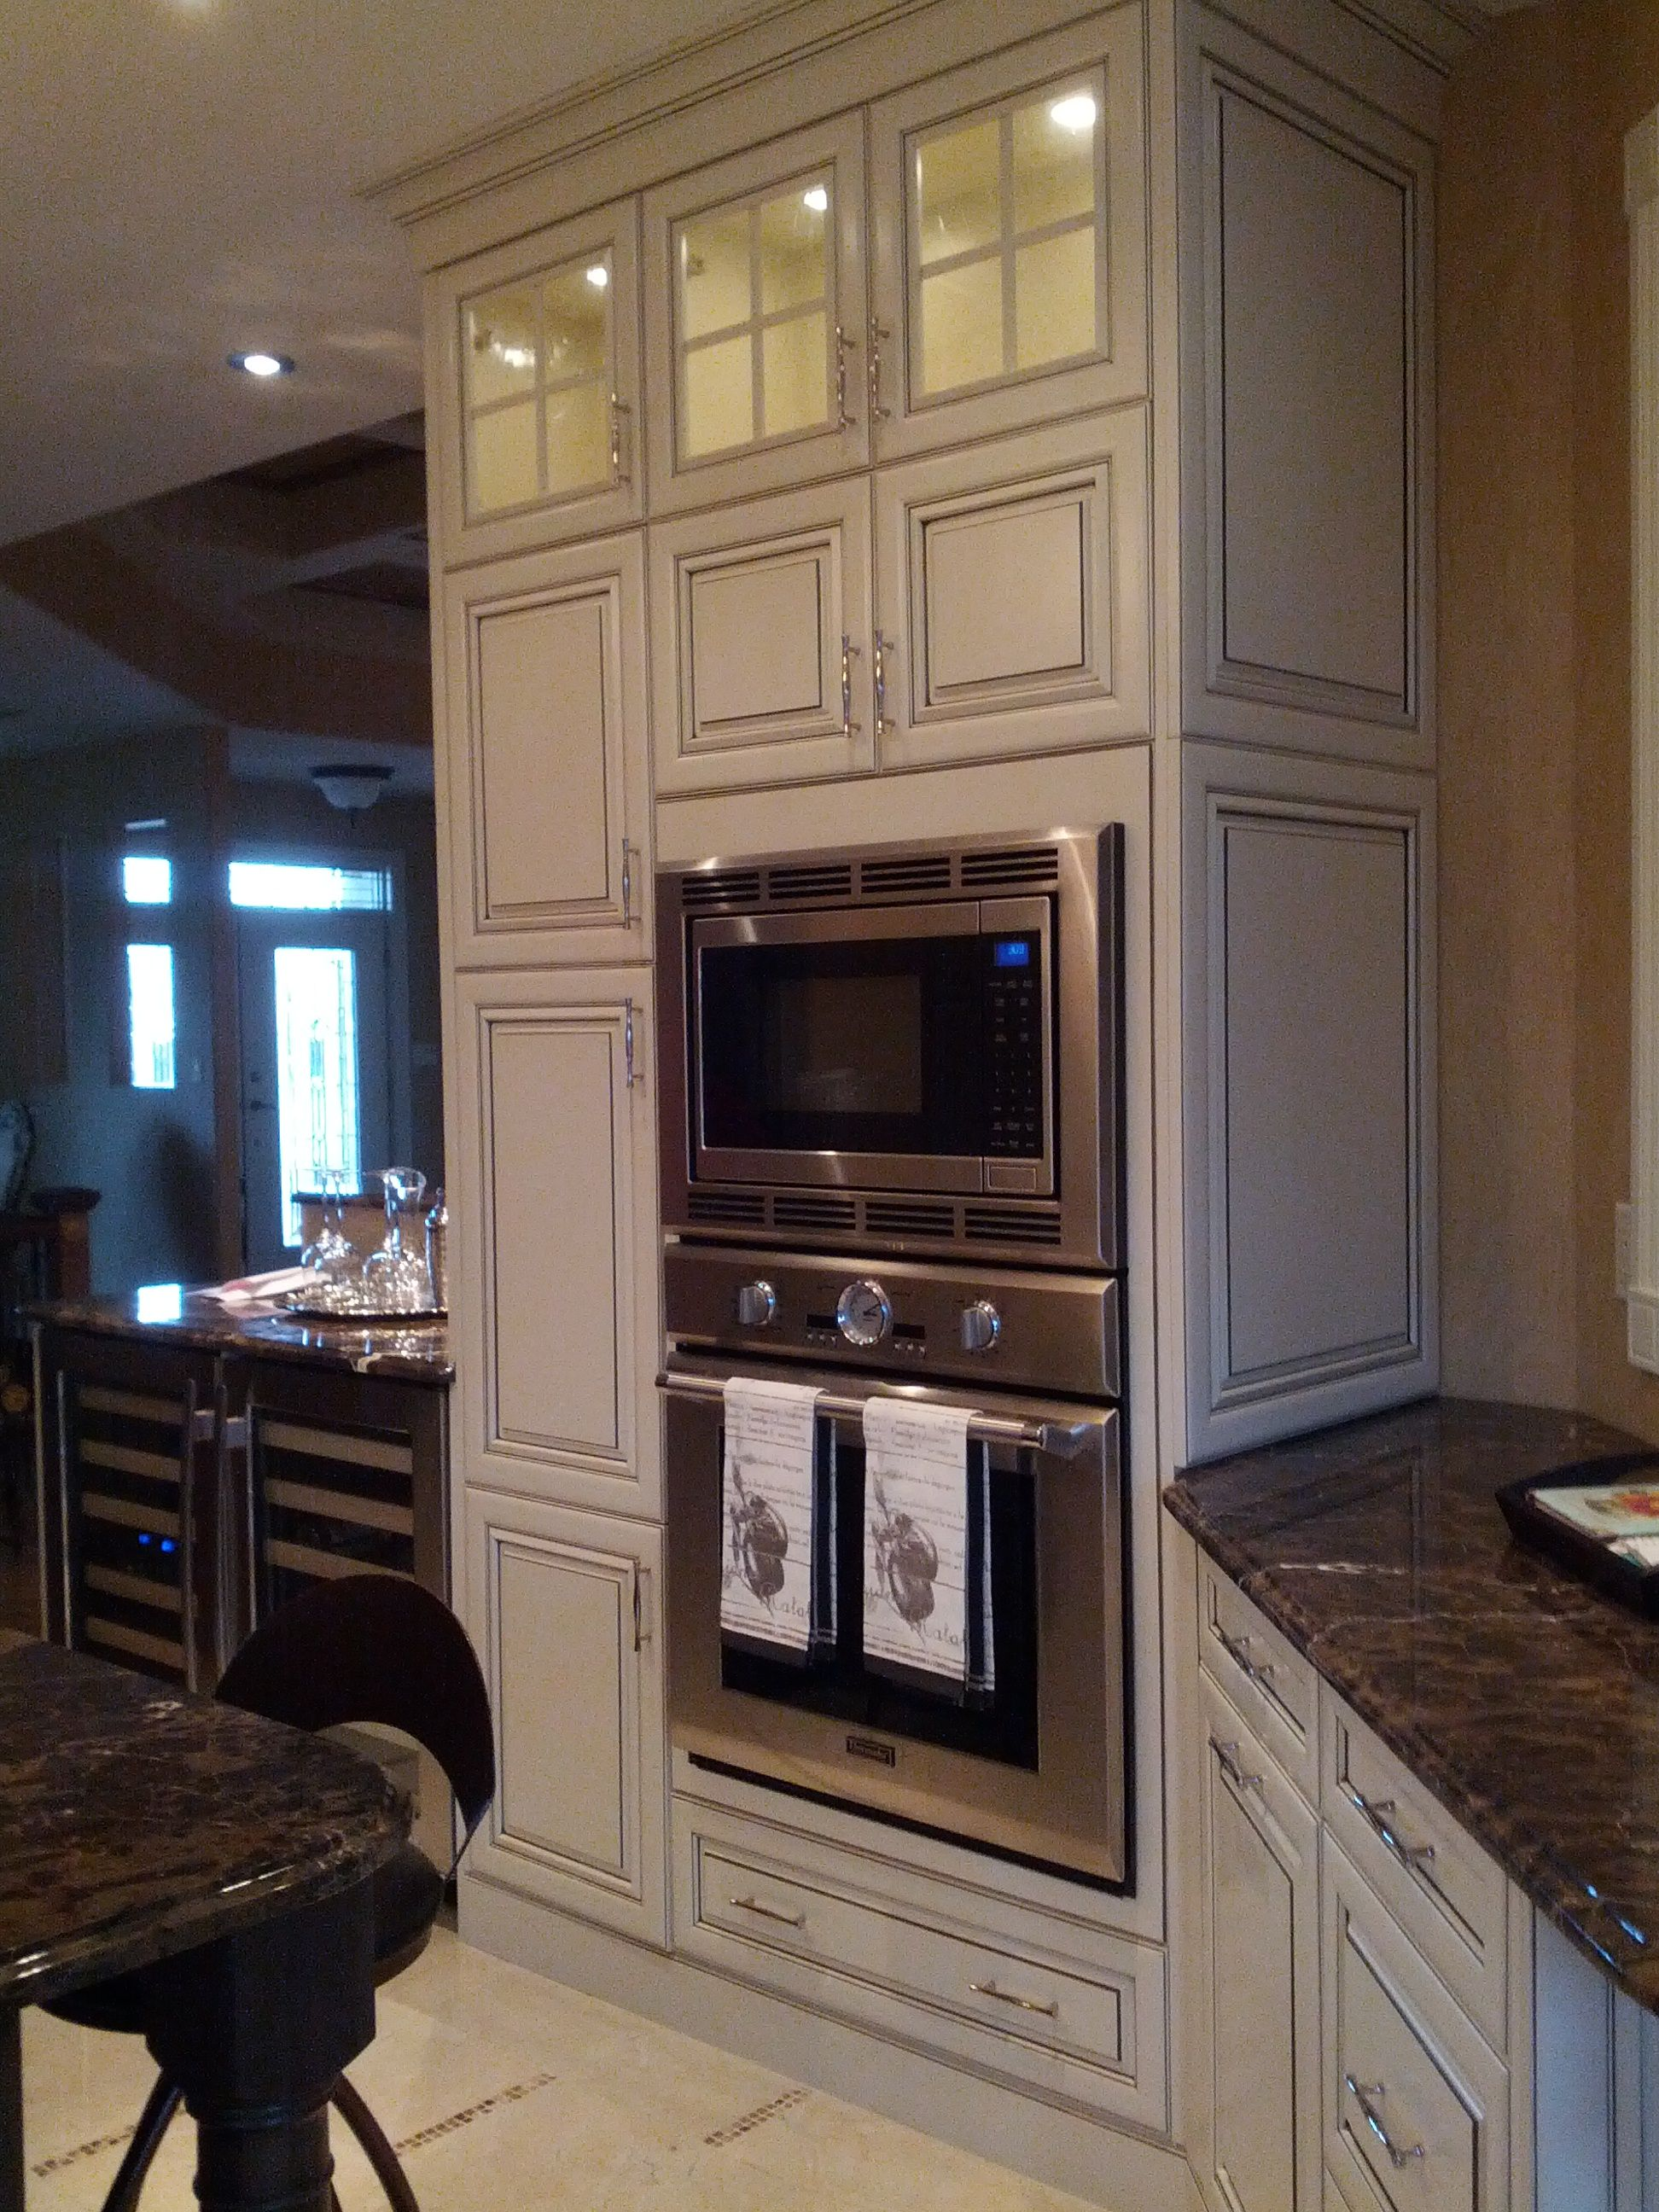 Cabinetry Kitchen Craft Door Style Paxson Color Seashell W Smoke Glaze Species Maple Kitchen Crafts Cabinetry Design Kitchen Design